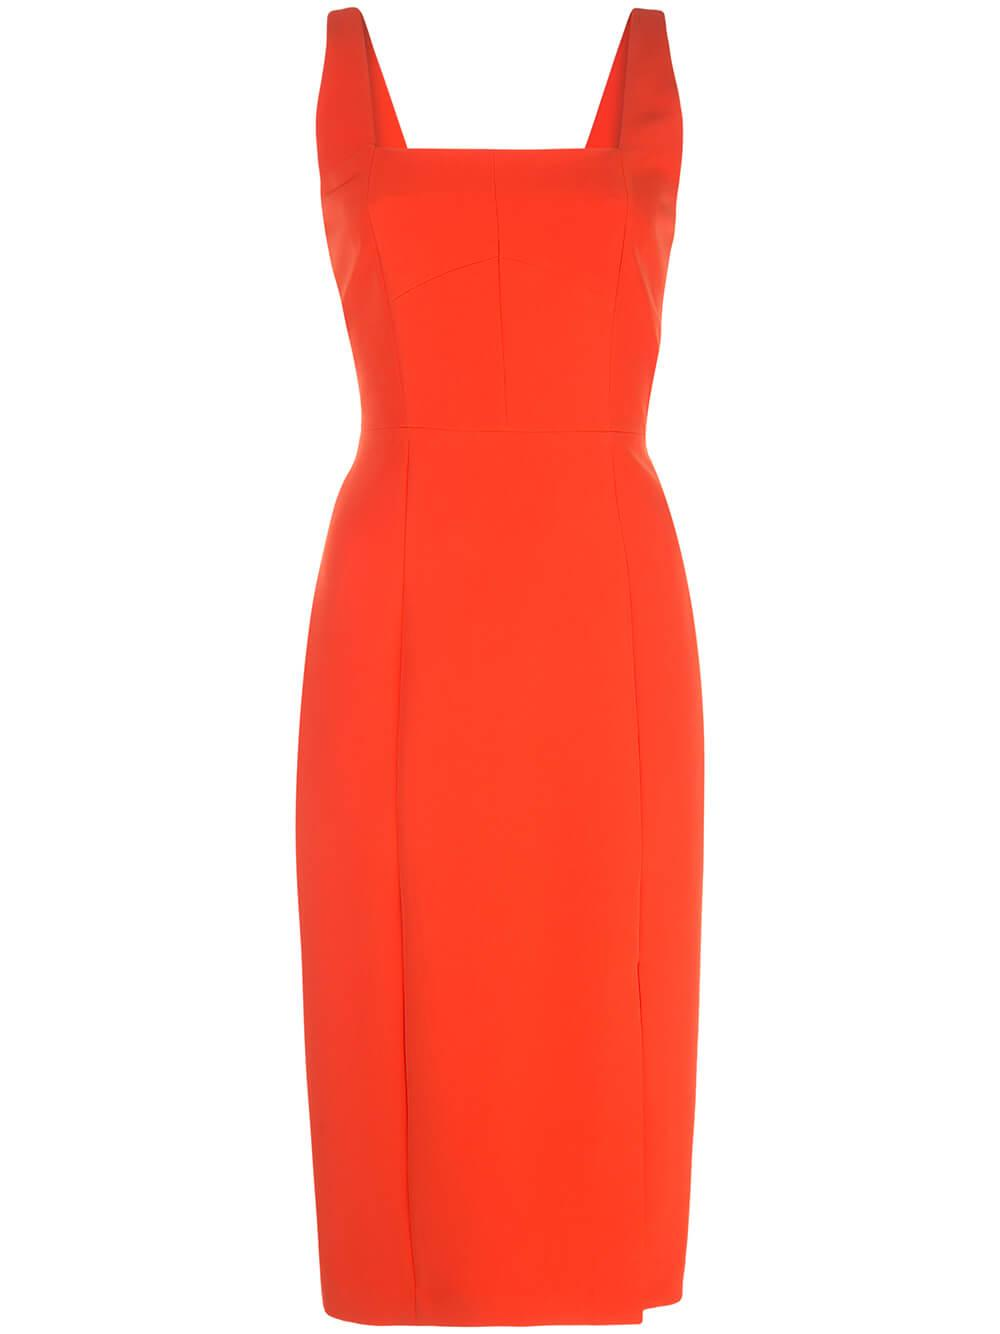 Cady Rita Square Neck Midi Dress